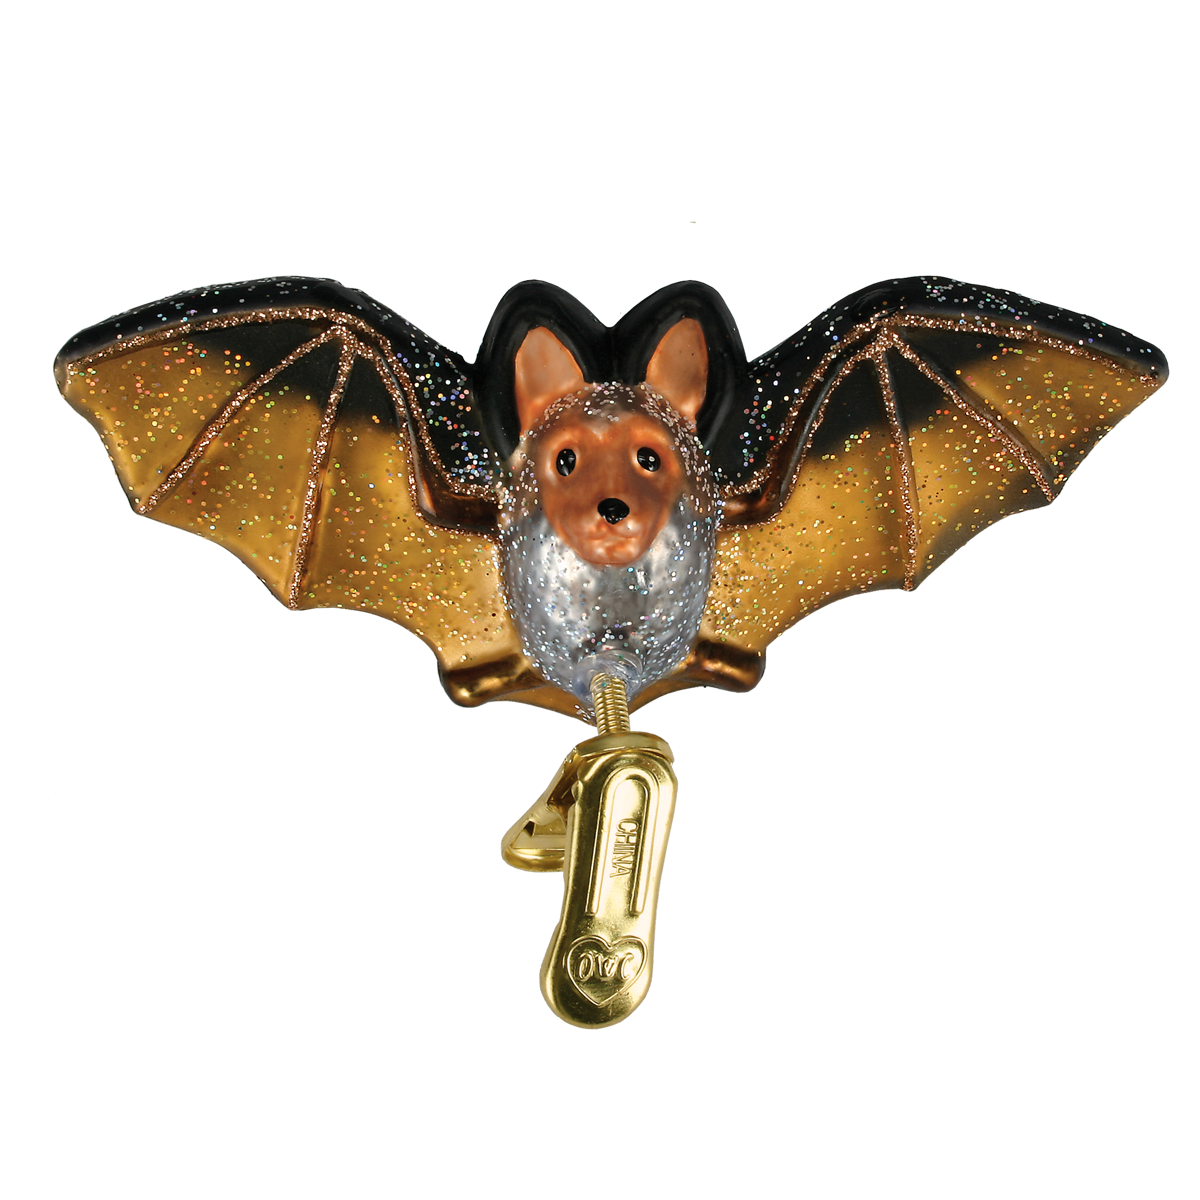 2020 Bat - Old World Christmas Blown Glass